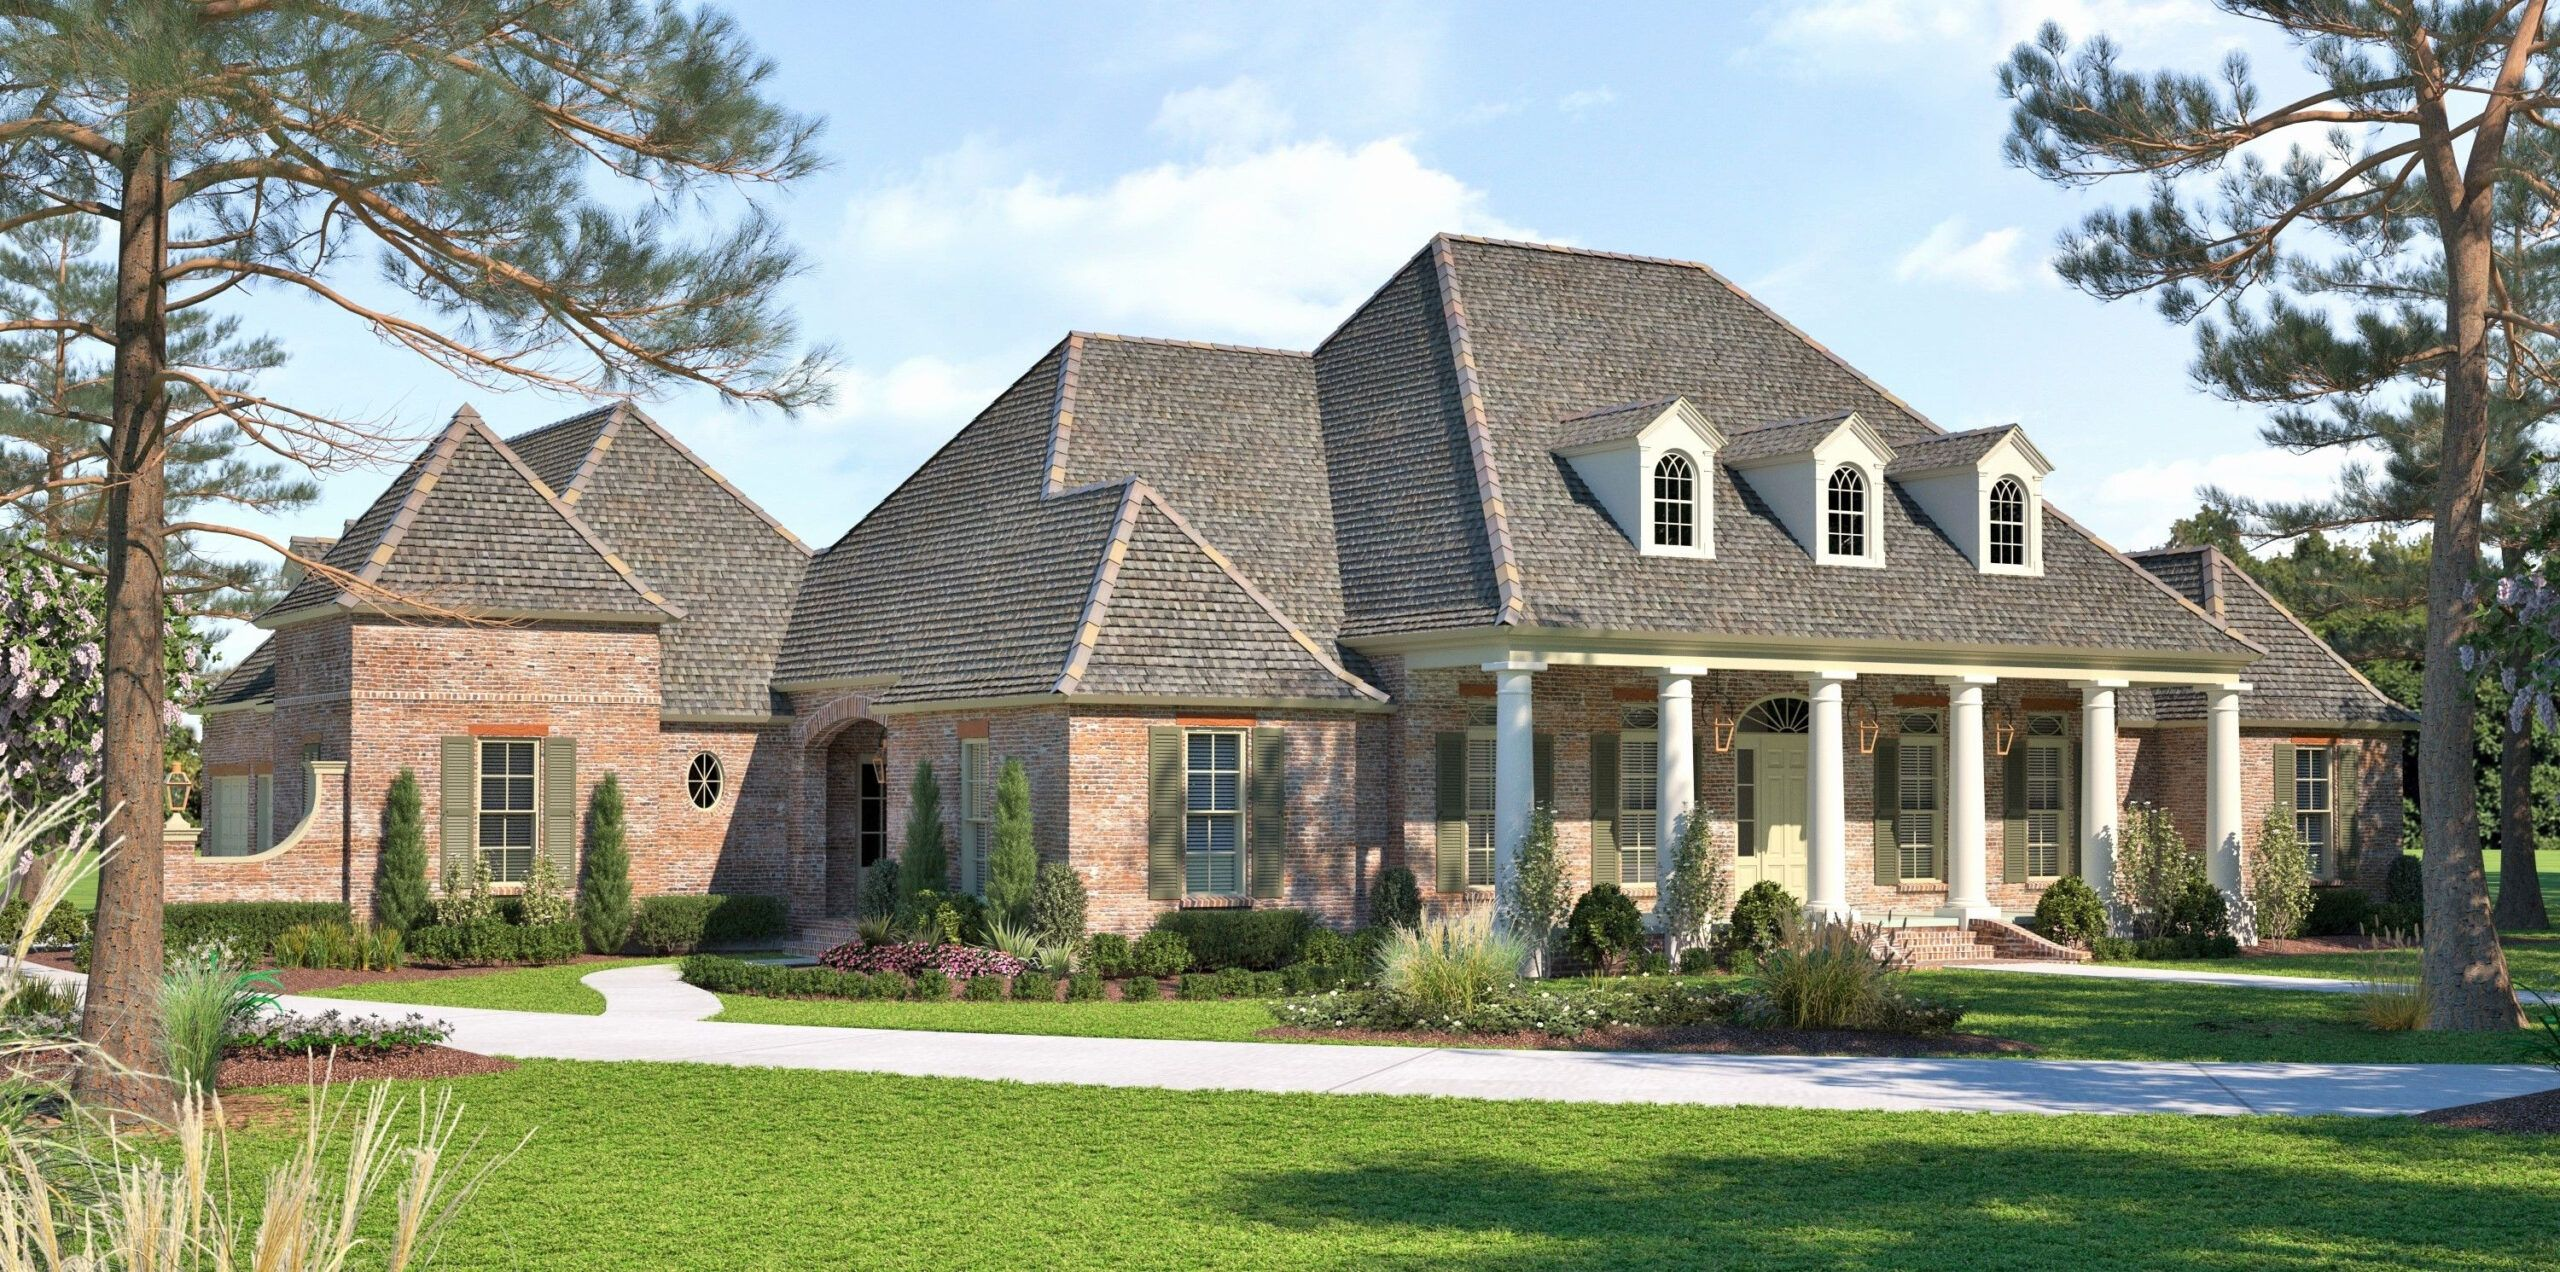 Craftsman House Plans With Porte Cochere In 2020 Acadian House Plans Craftsman House Plans French House Plans